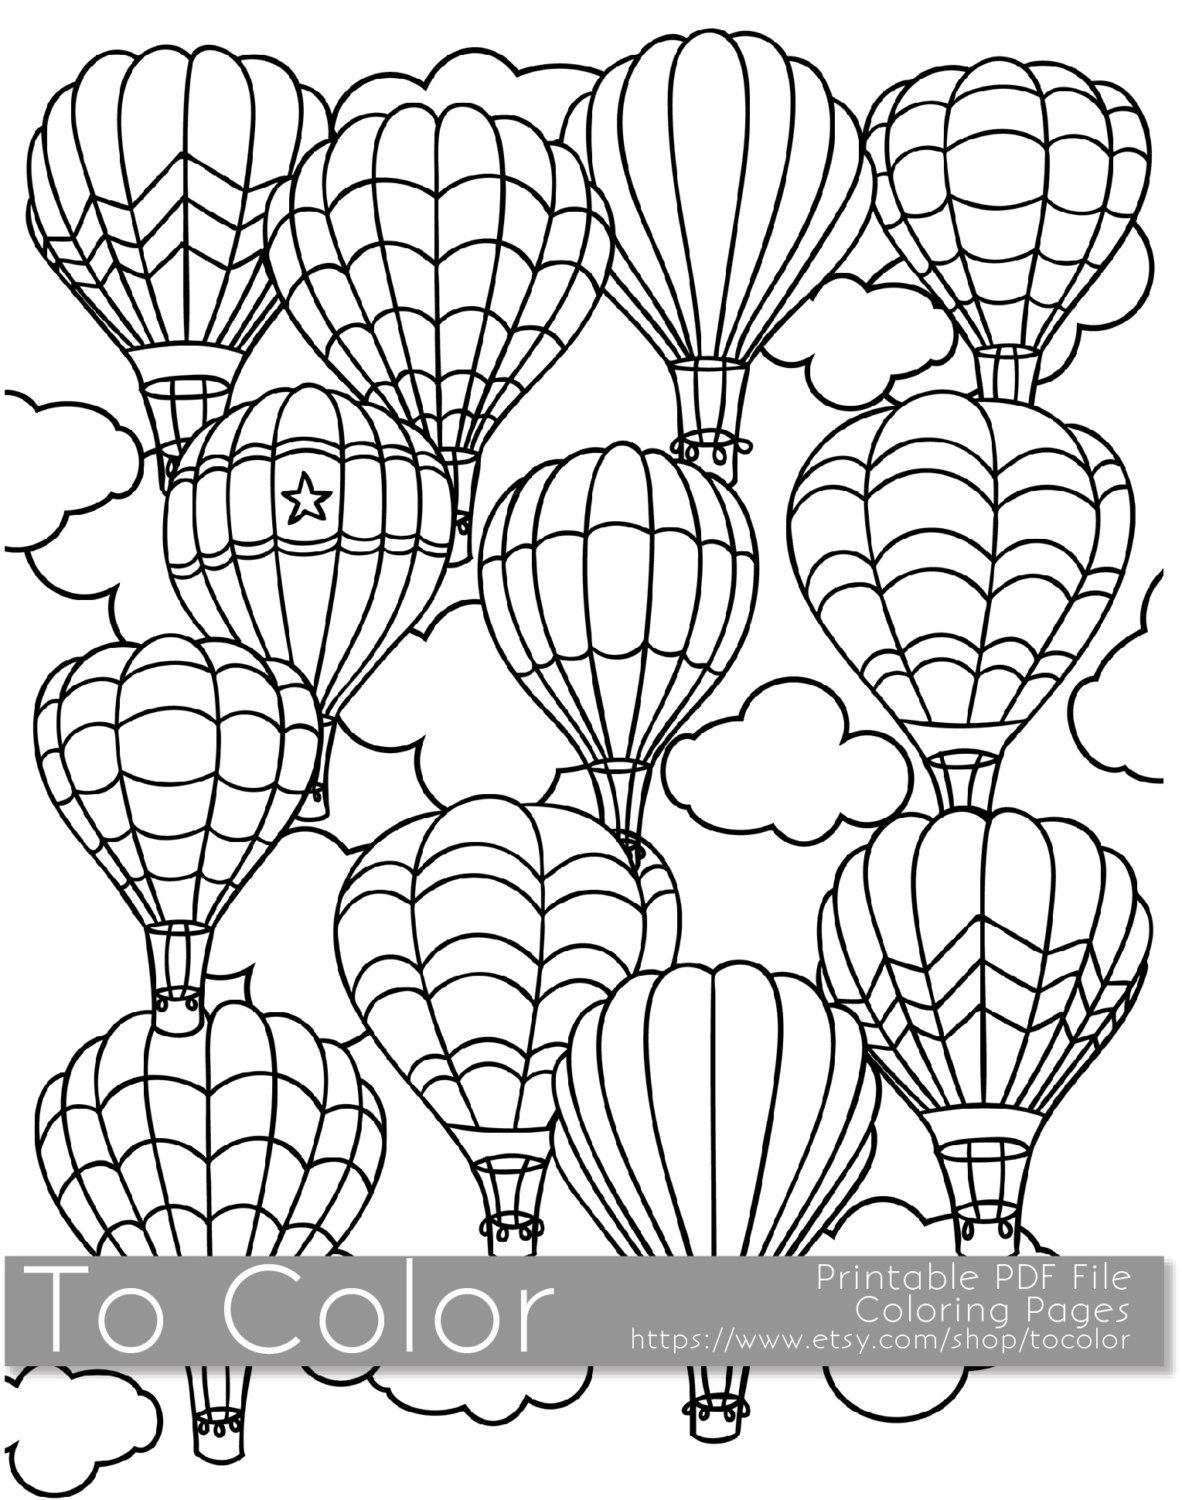 Printable Hot Air Balloon Coloring Page for Adults, PDF